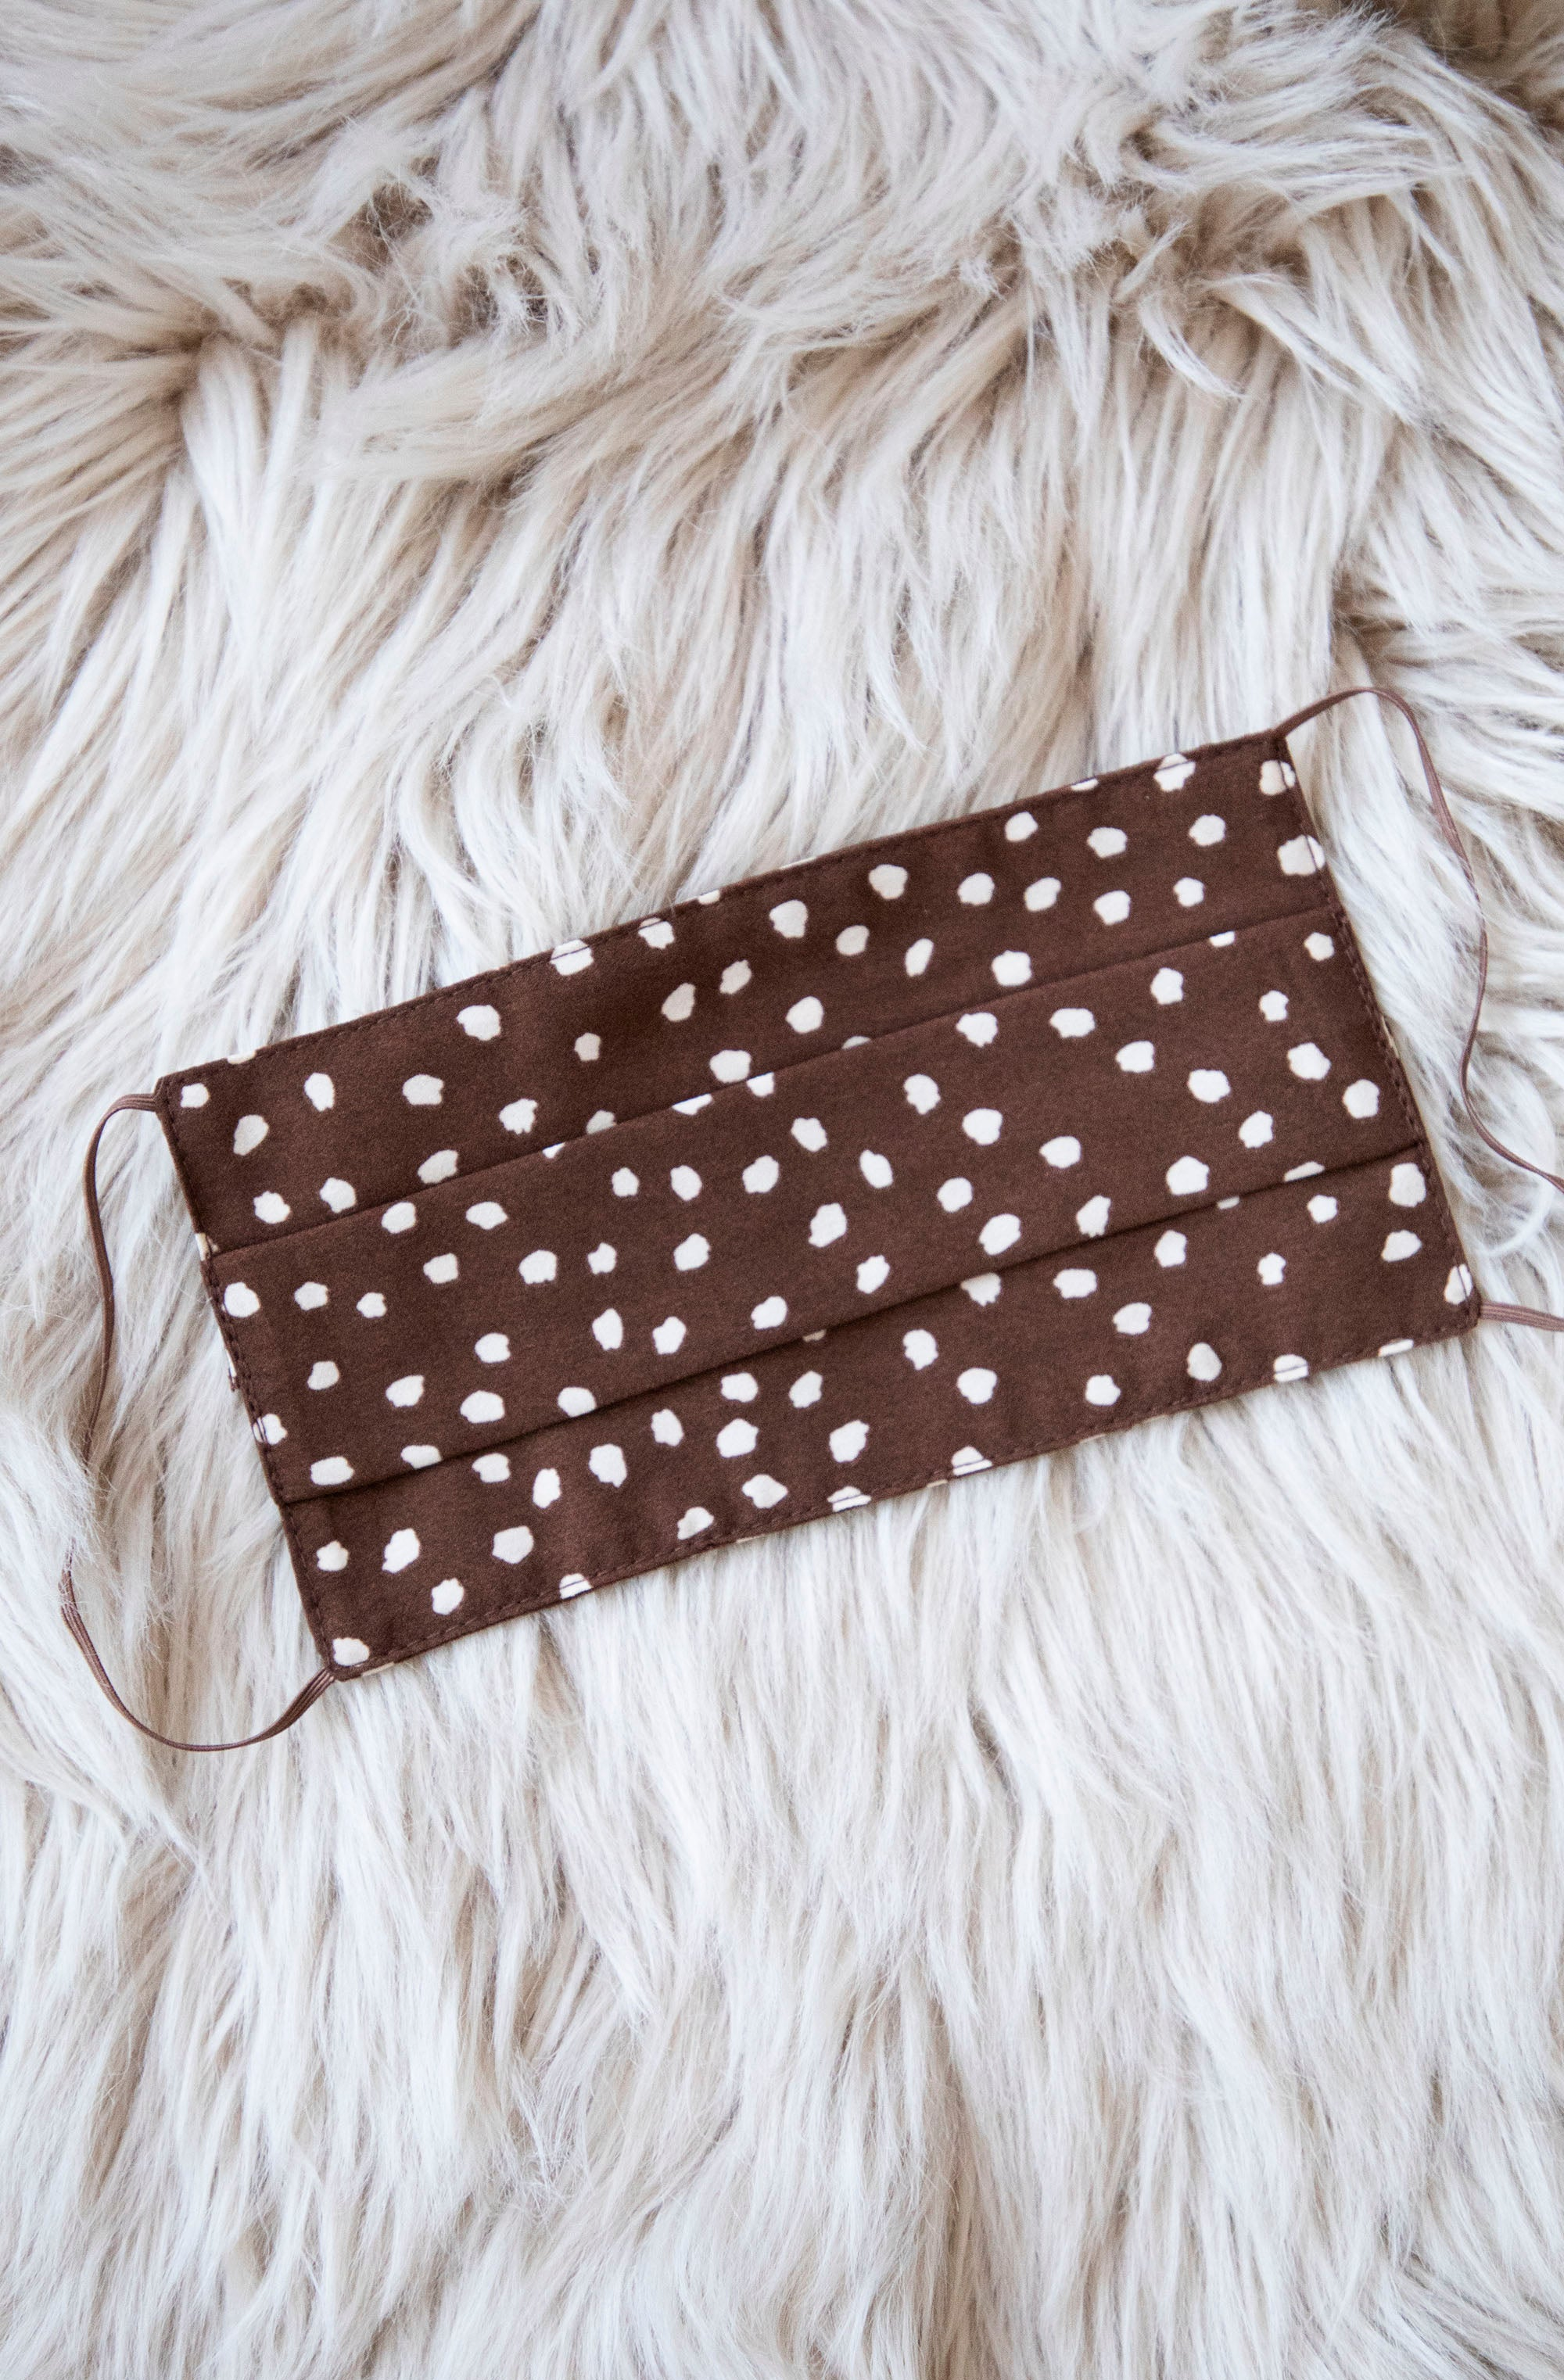 Spots & Space Brown/Cream - Mondkapje